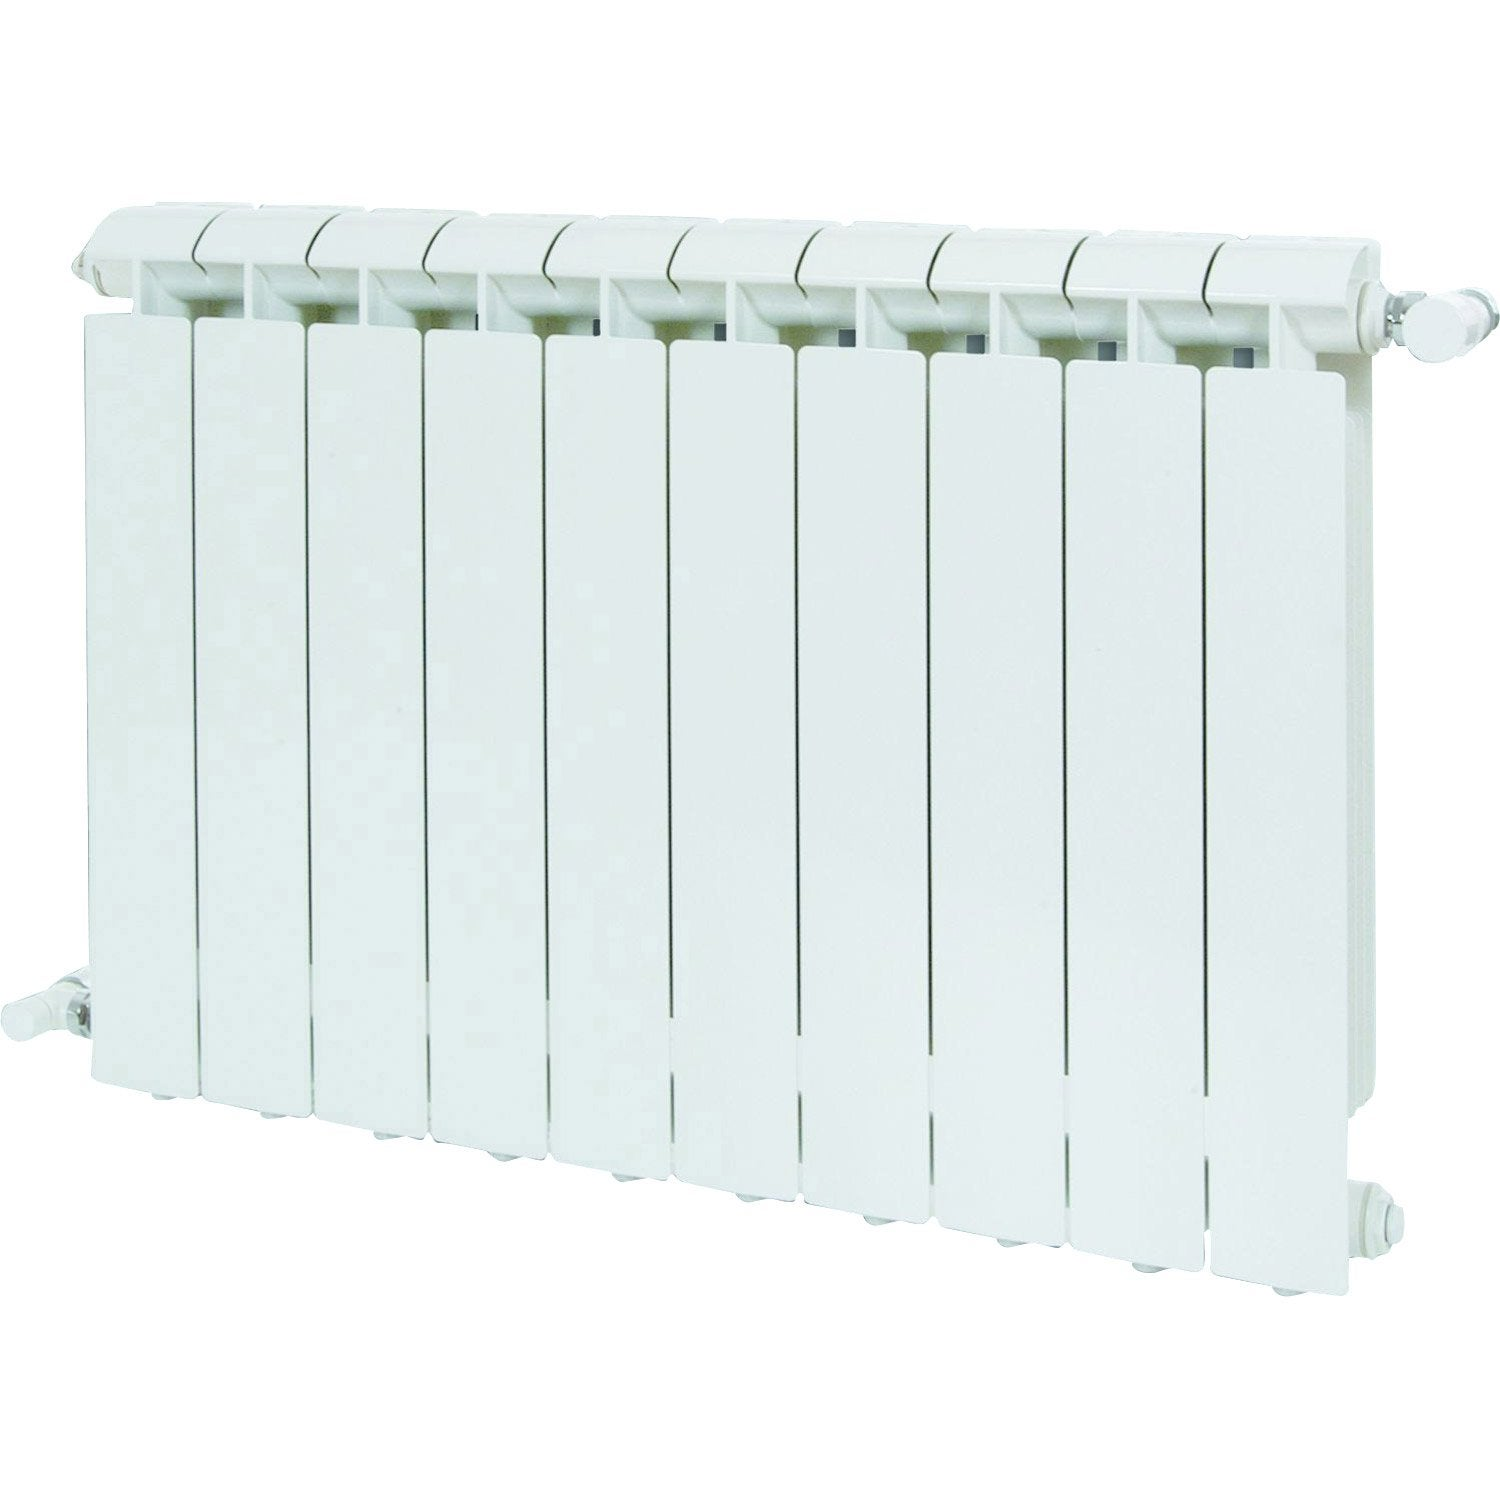 Radiateur fonte alu leroy merlin for Tube rectangulaire alu leroy merlin